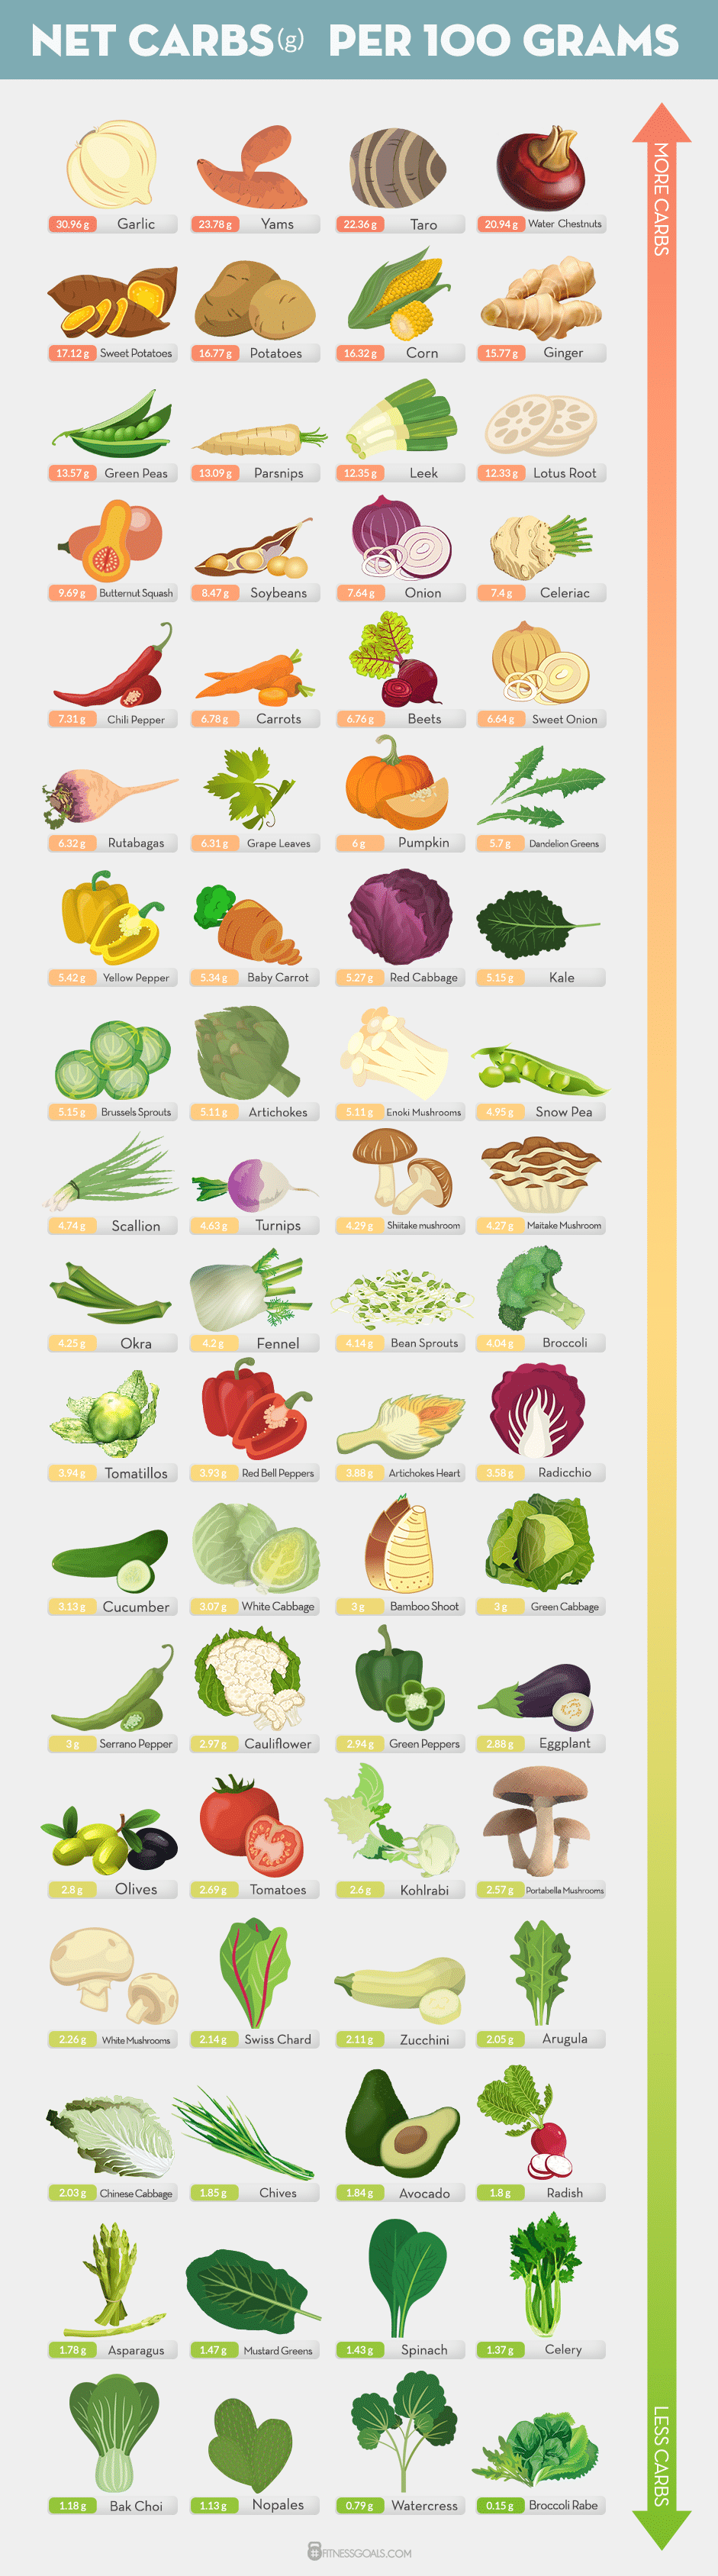 Keto Vegetable Carb List